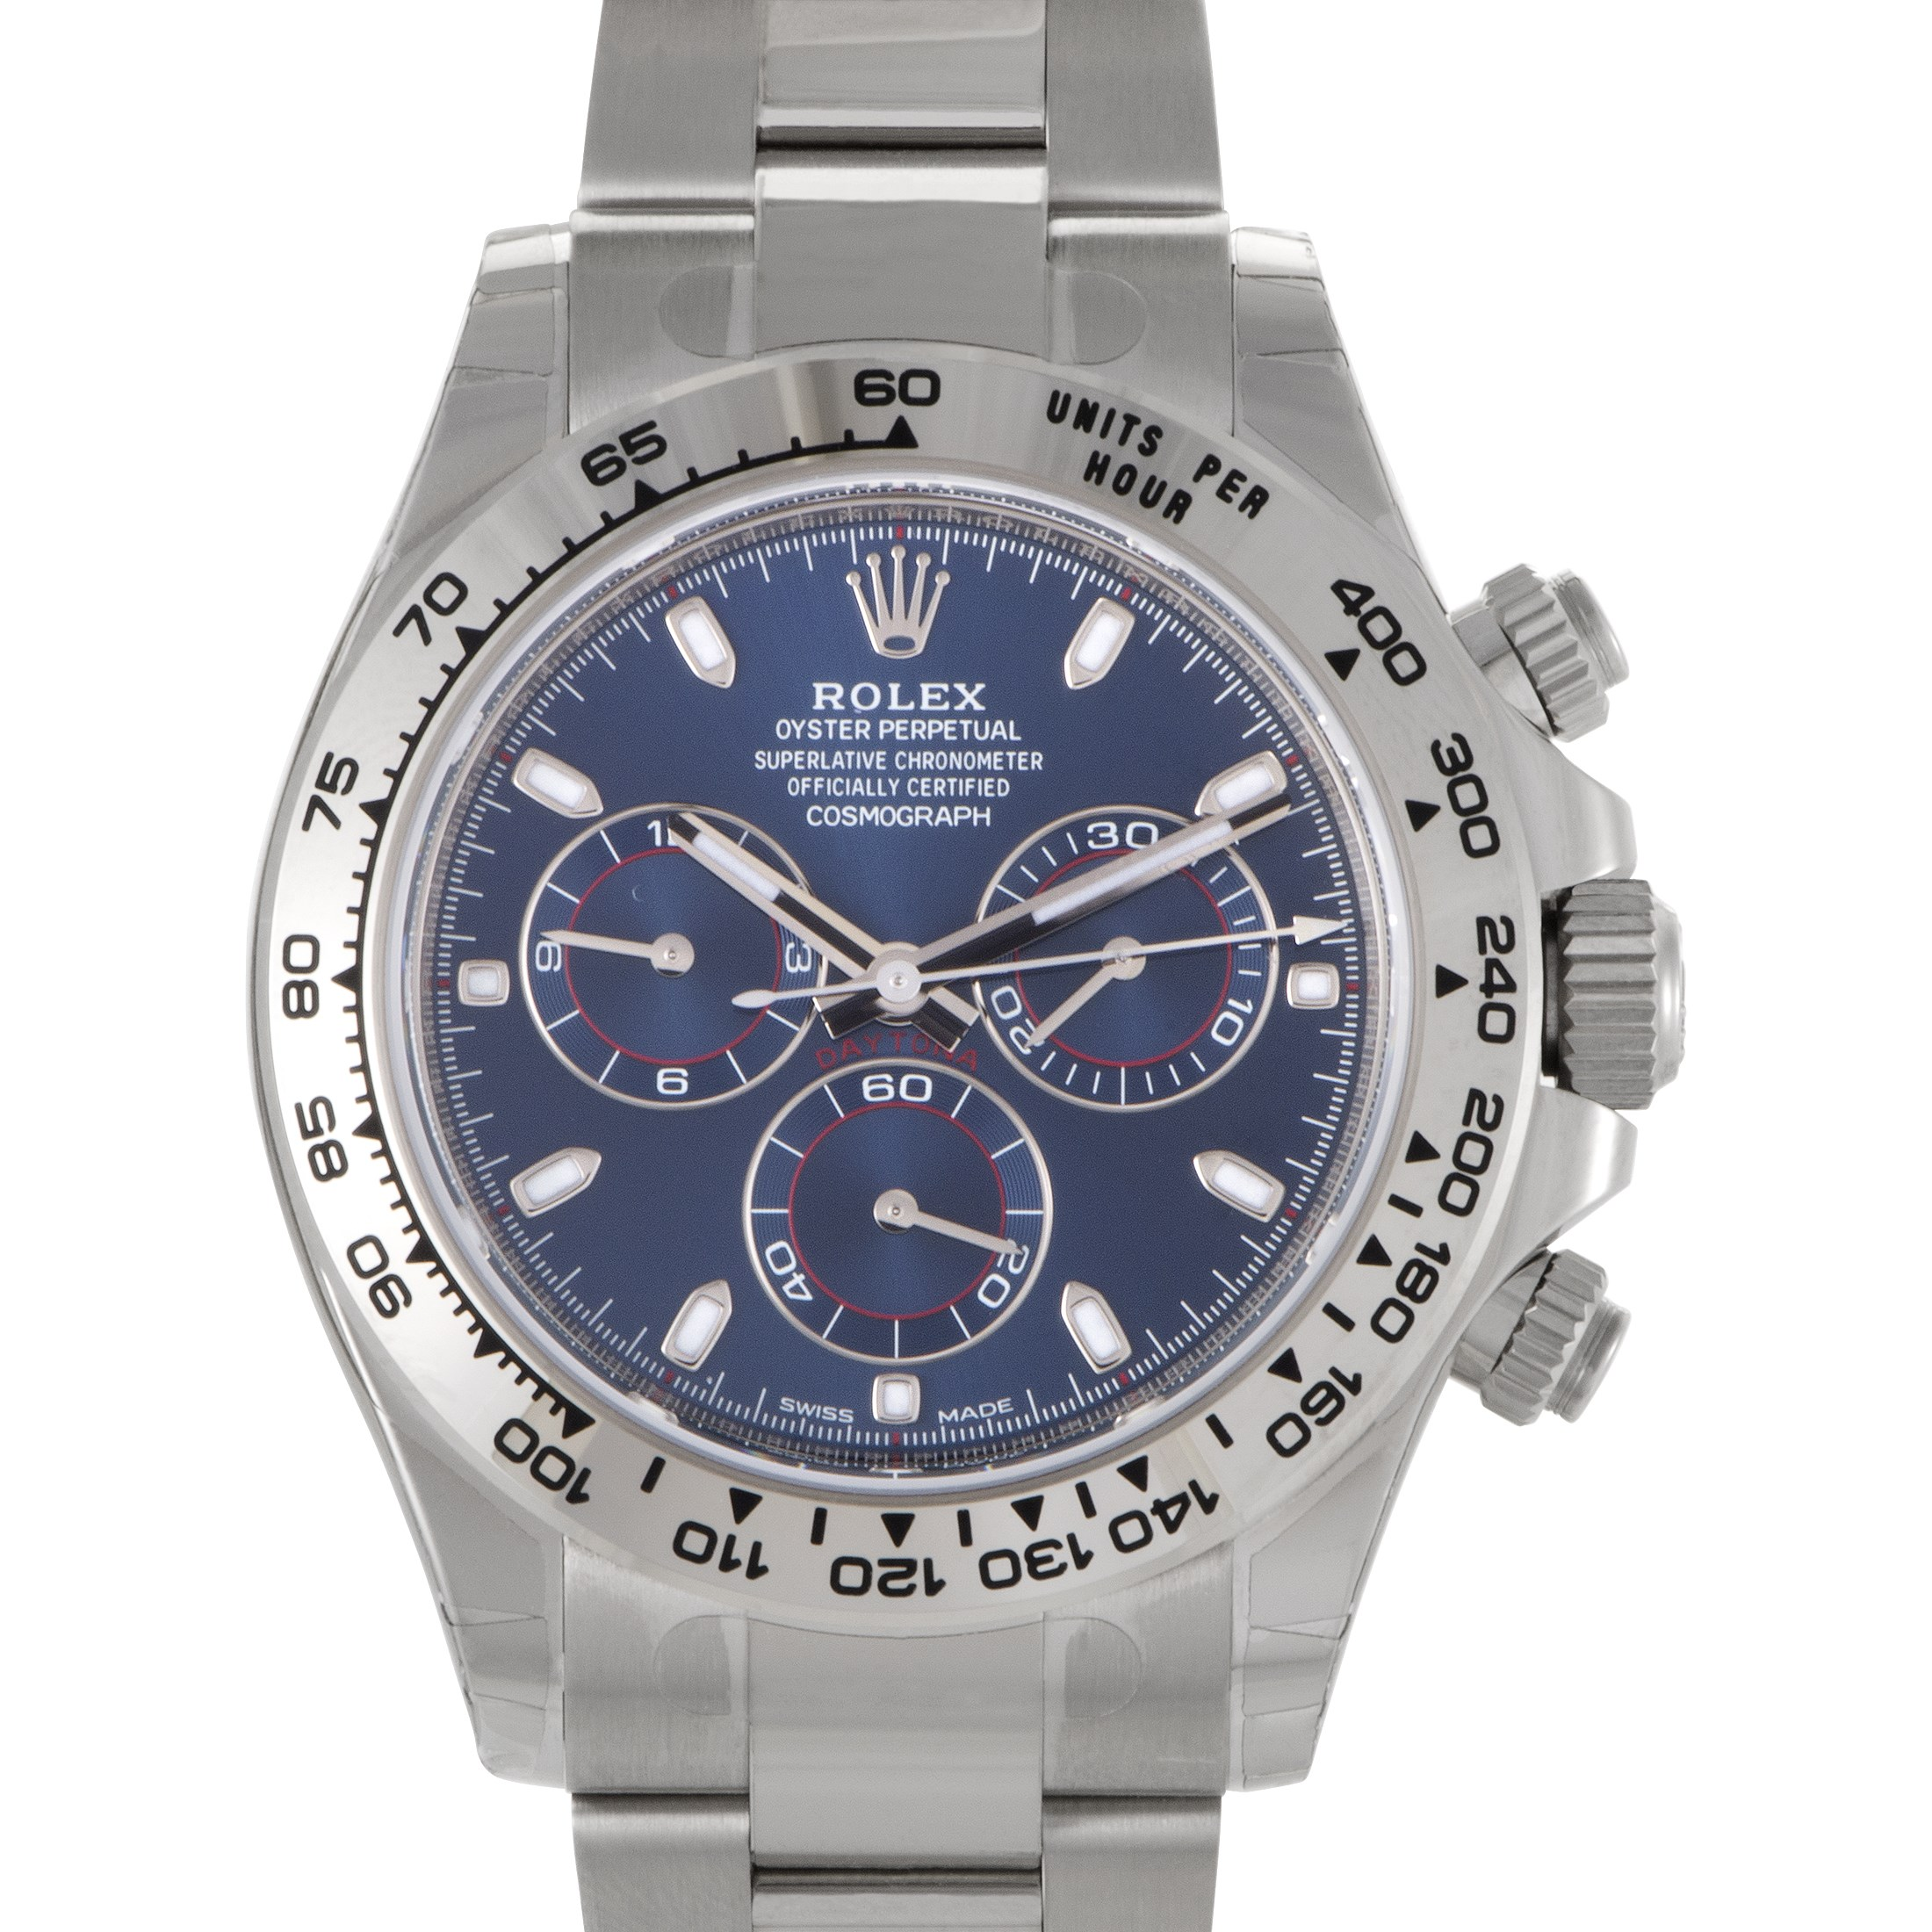 Oyster Perpetual Cosmograph Daytona Automatic Watch 116509-0071